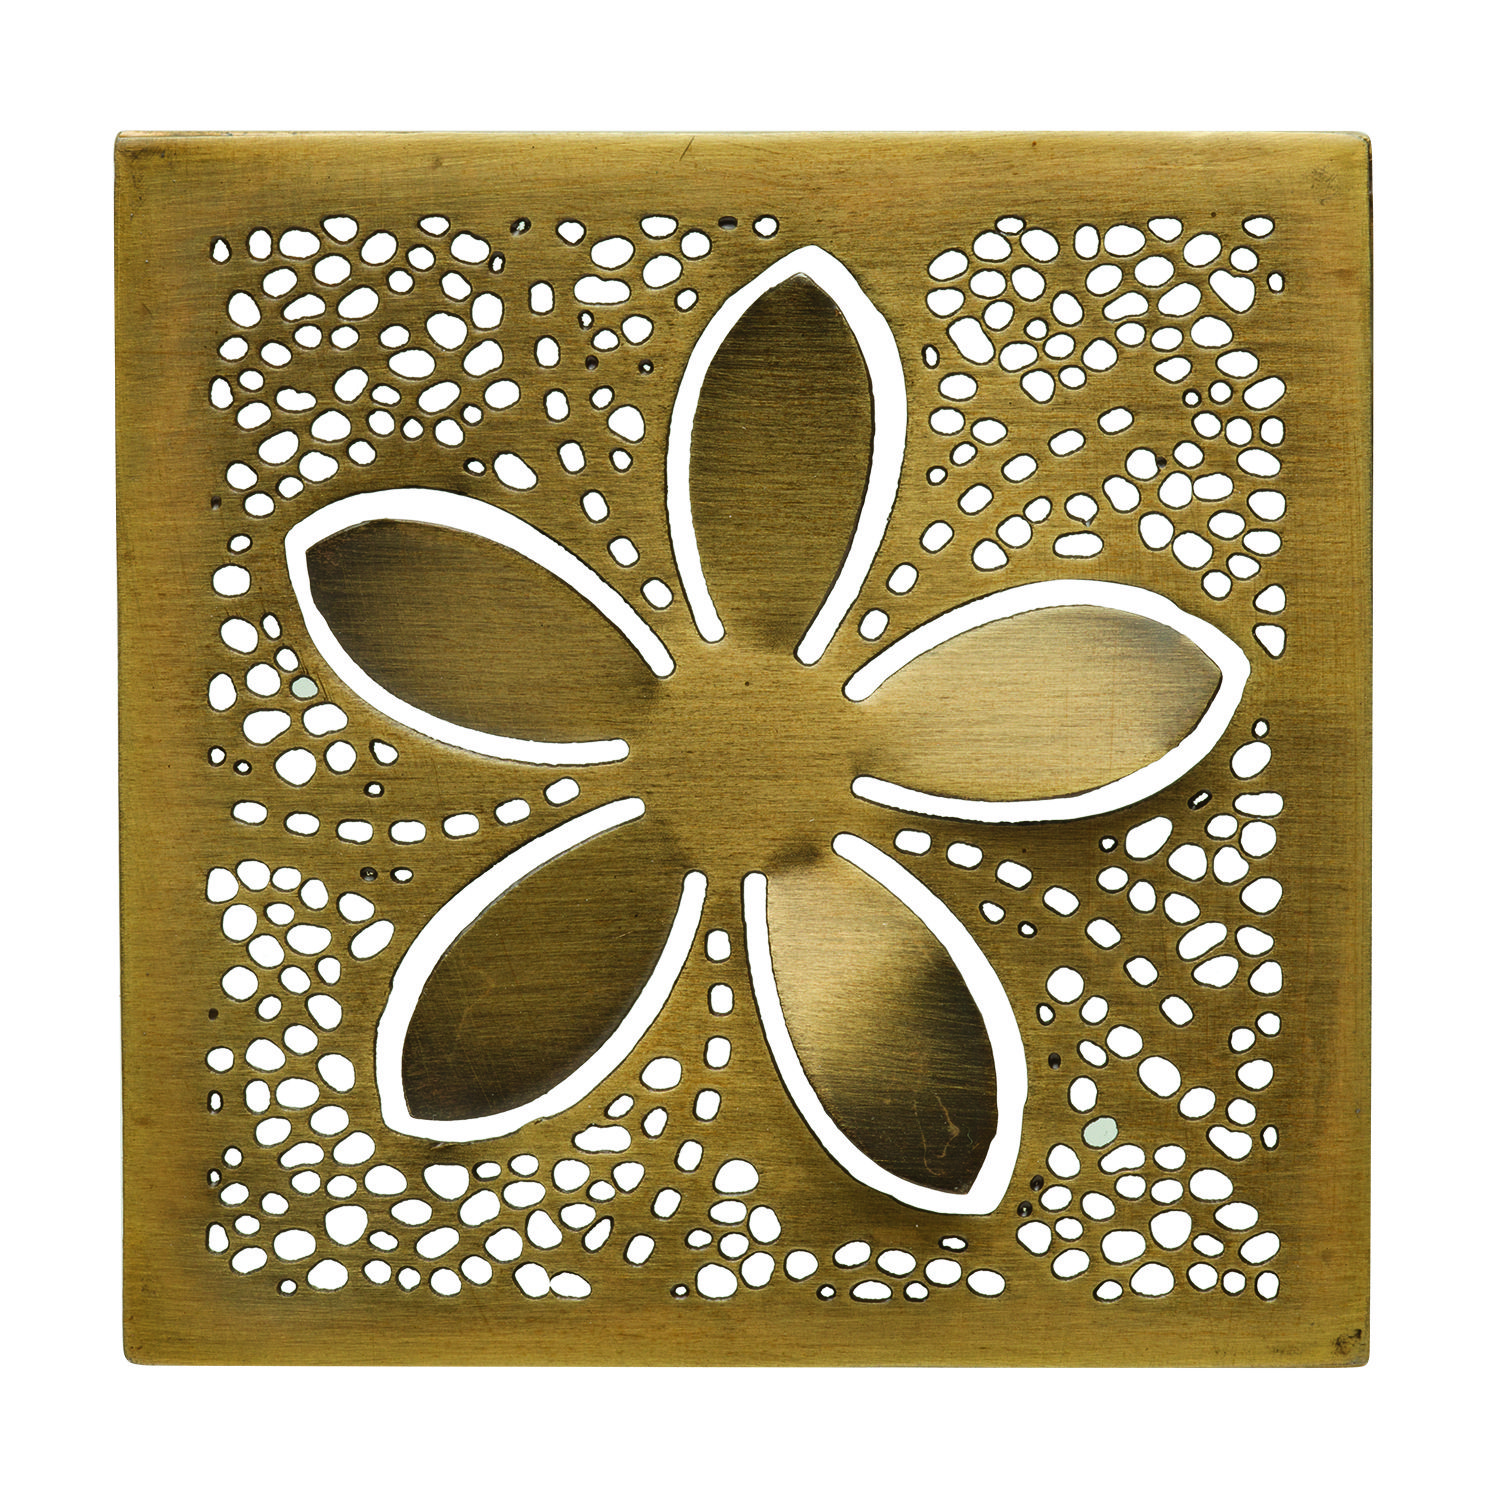 New scentsy gallery frame brass blossom a constellation